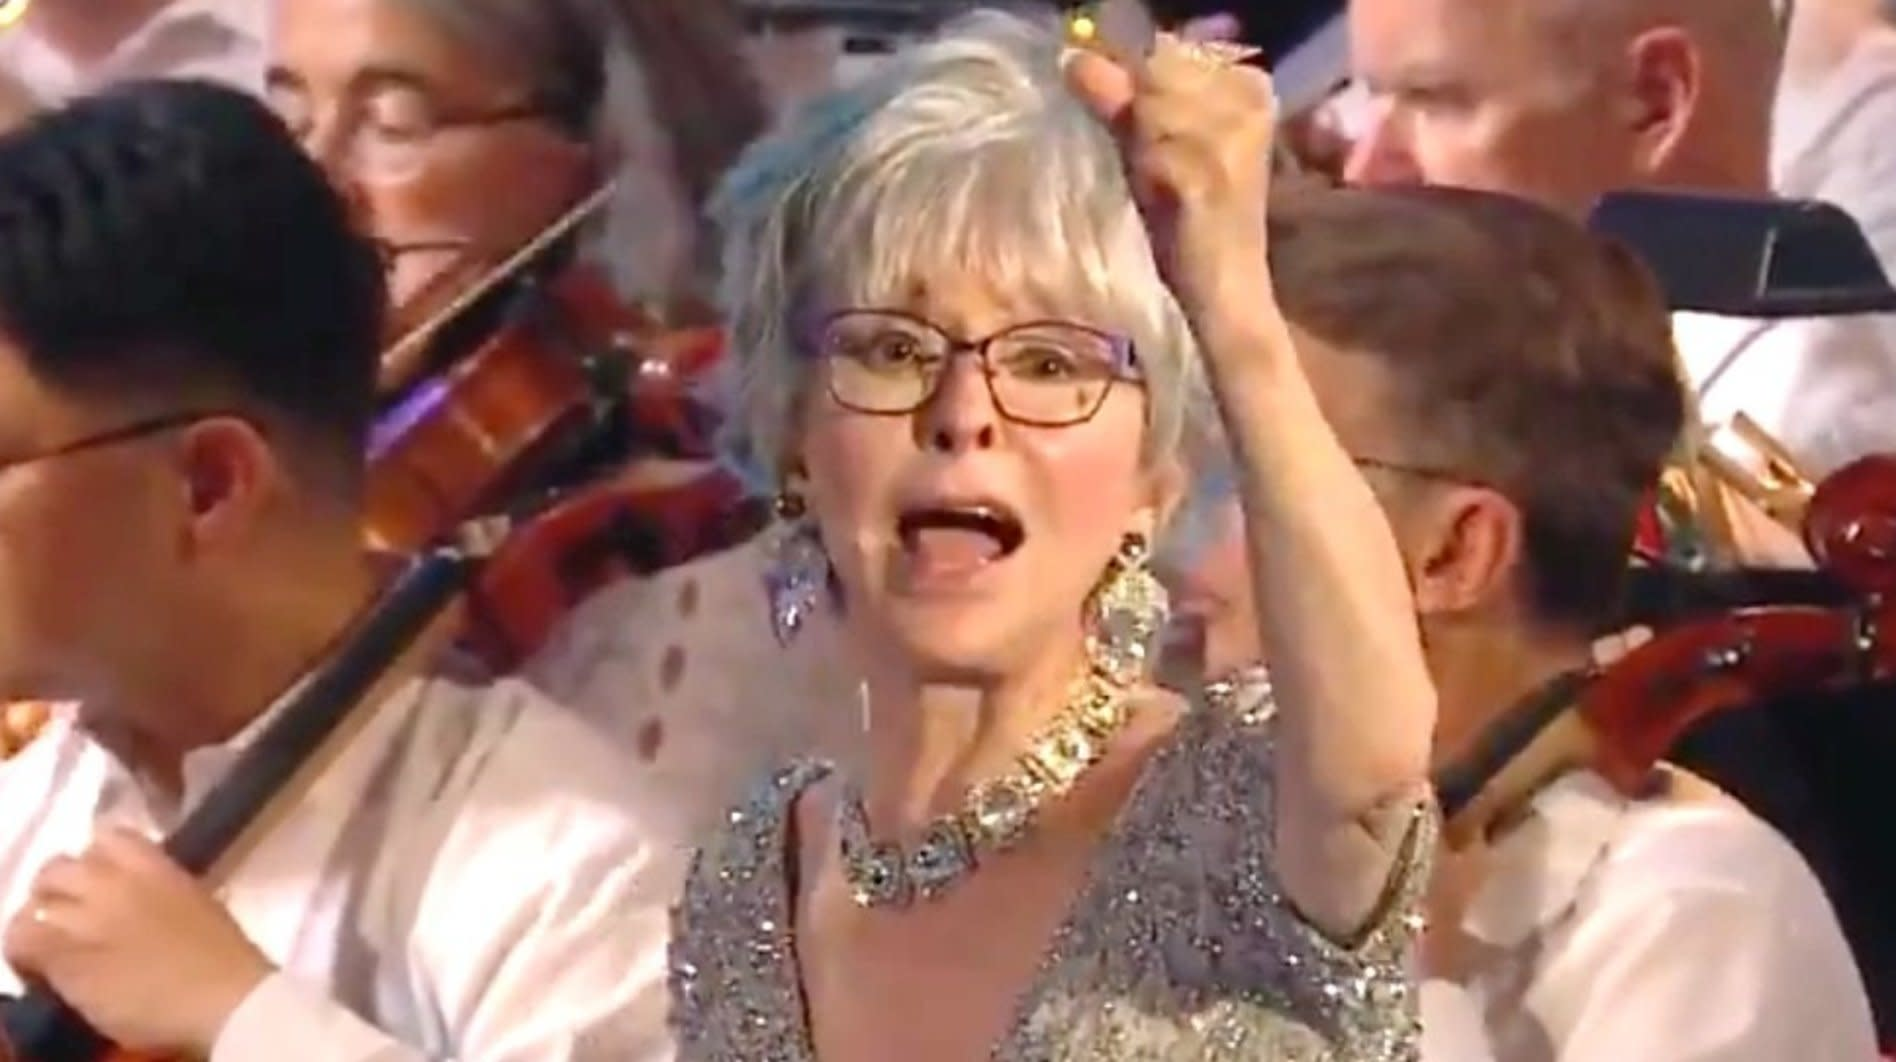 Rita Moreno Absolutely Kills It With Spine-Tingling Independence Day Performance